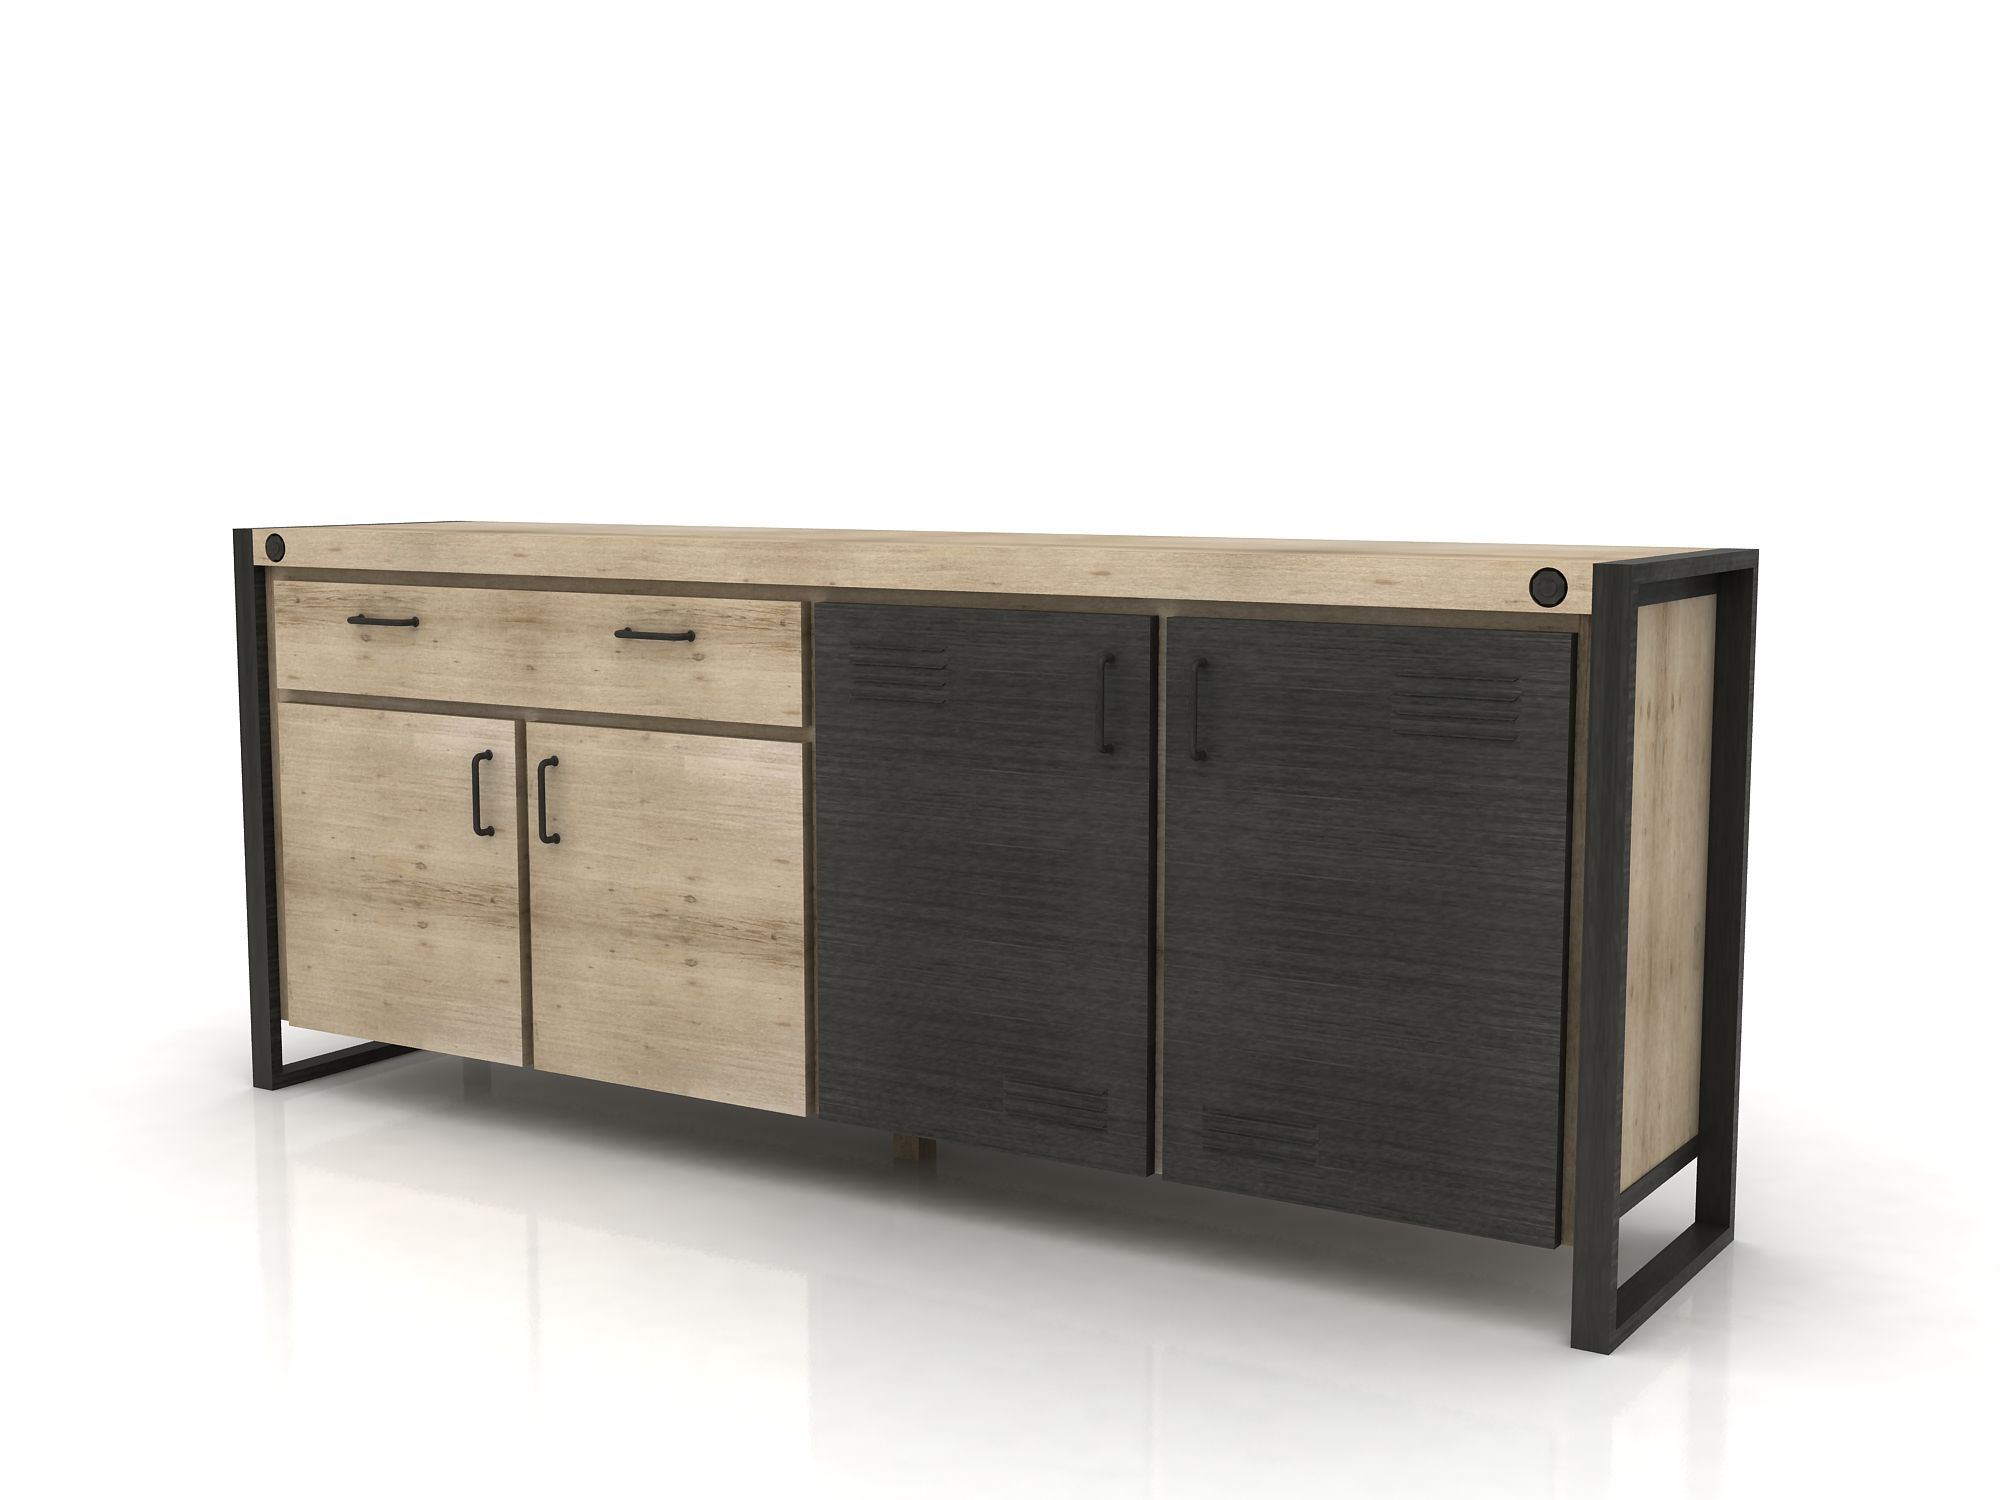 Epingle Par Pier Import Sur Home Inside Buffet Enfilade Buffet Industriel Buffet